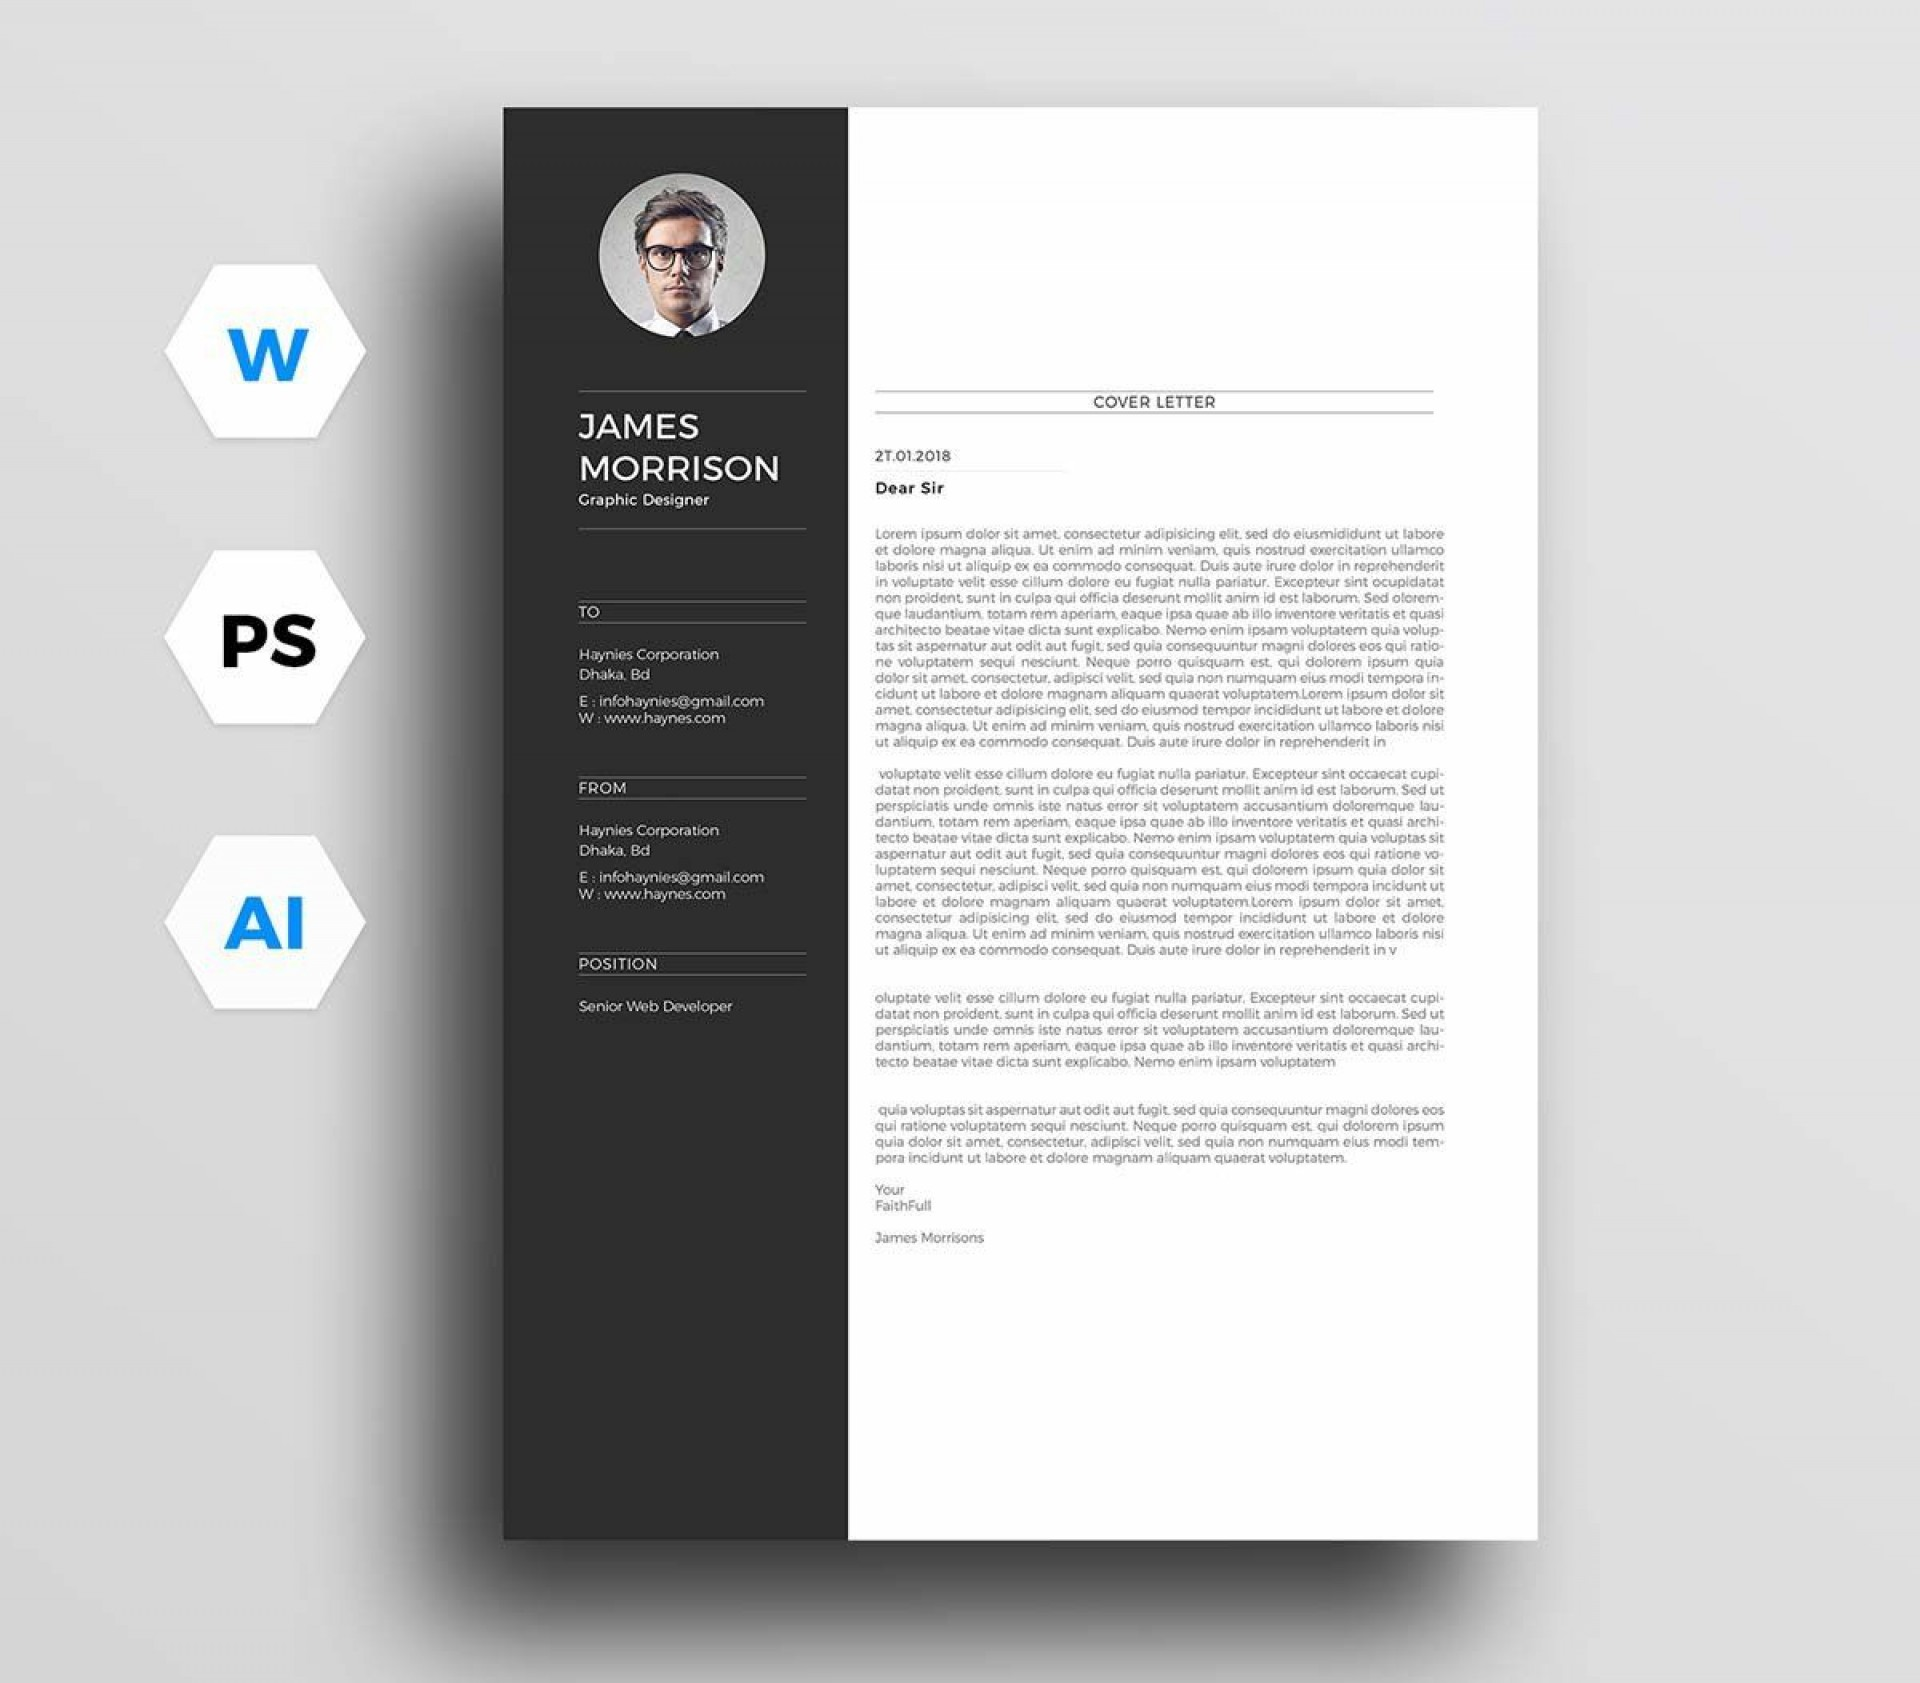 002 Best Free Download Cv Cover Letter Template Image  Templates1920